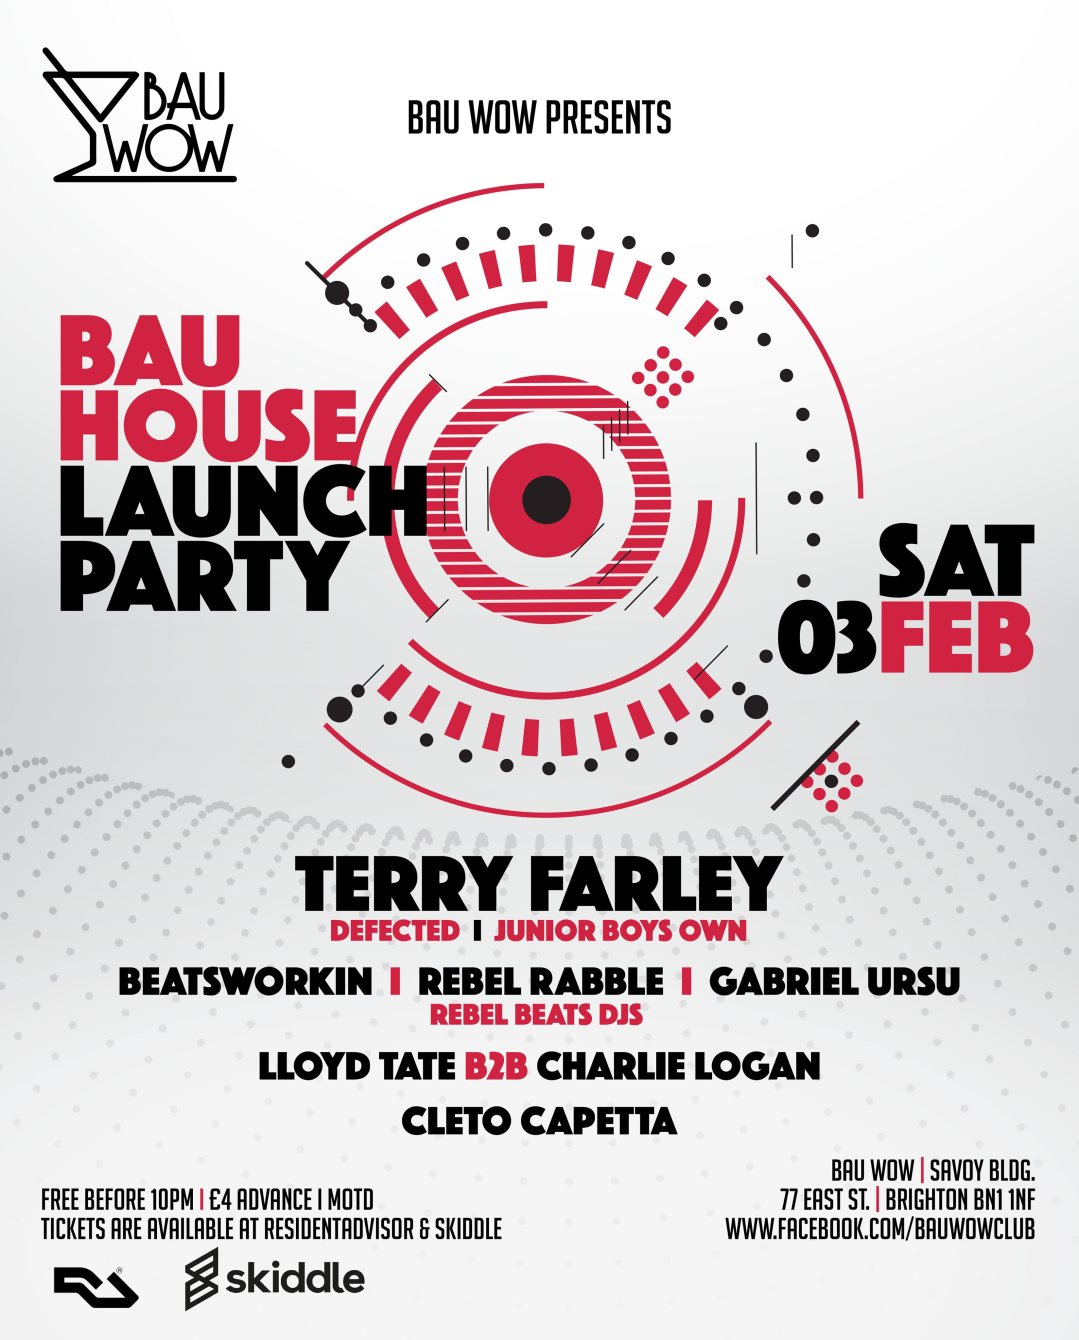 RA: Bau Wow presents: Bau House Launch with Terry Farley at